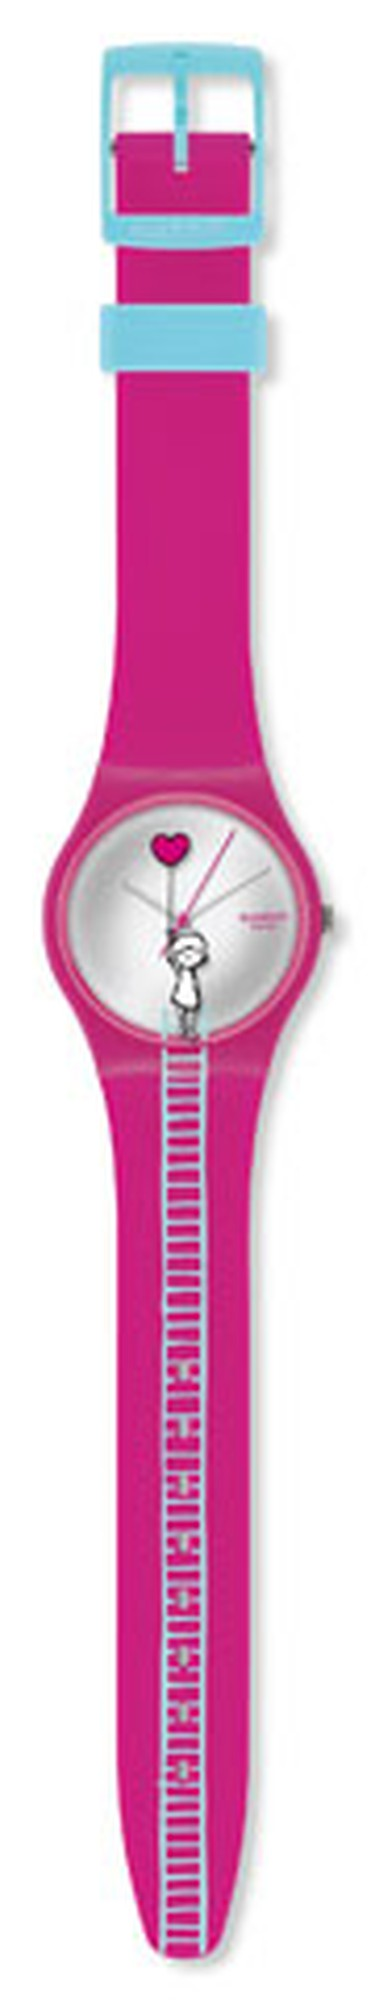 Make time, Valentine! Your love will keep lifting her higher with this adorable watch from the Swatch Love Collection, $65, www.swatch.com. (Courtesy of Swatch)